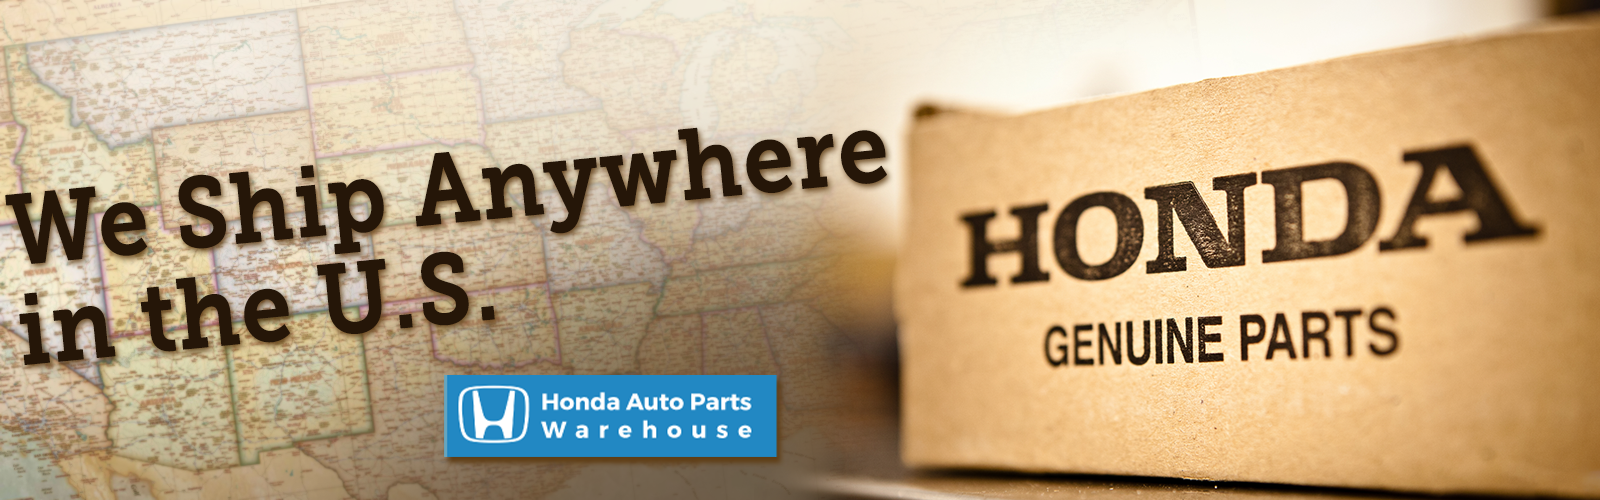 Honda Auto Parts Warehouse Banner 2